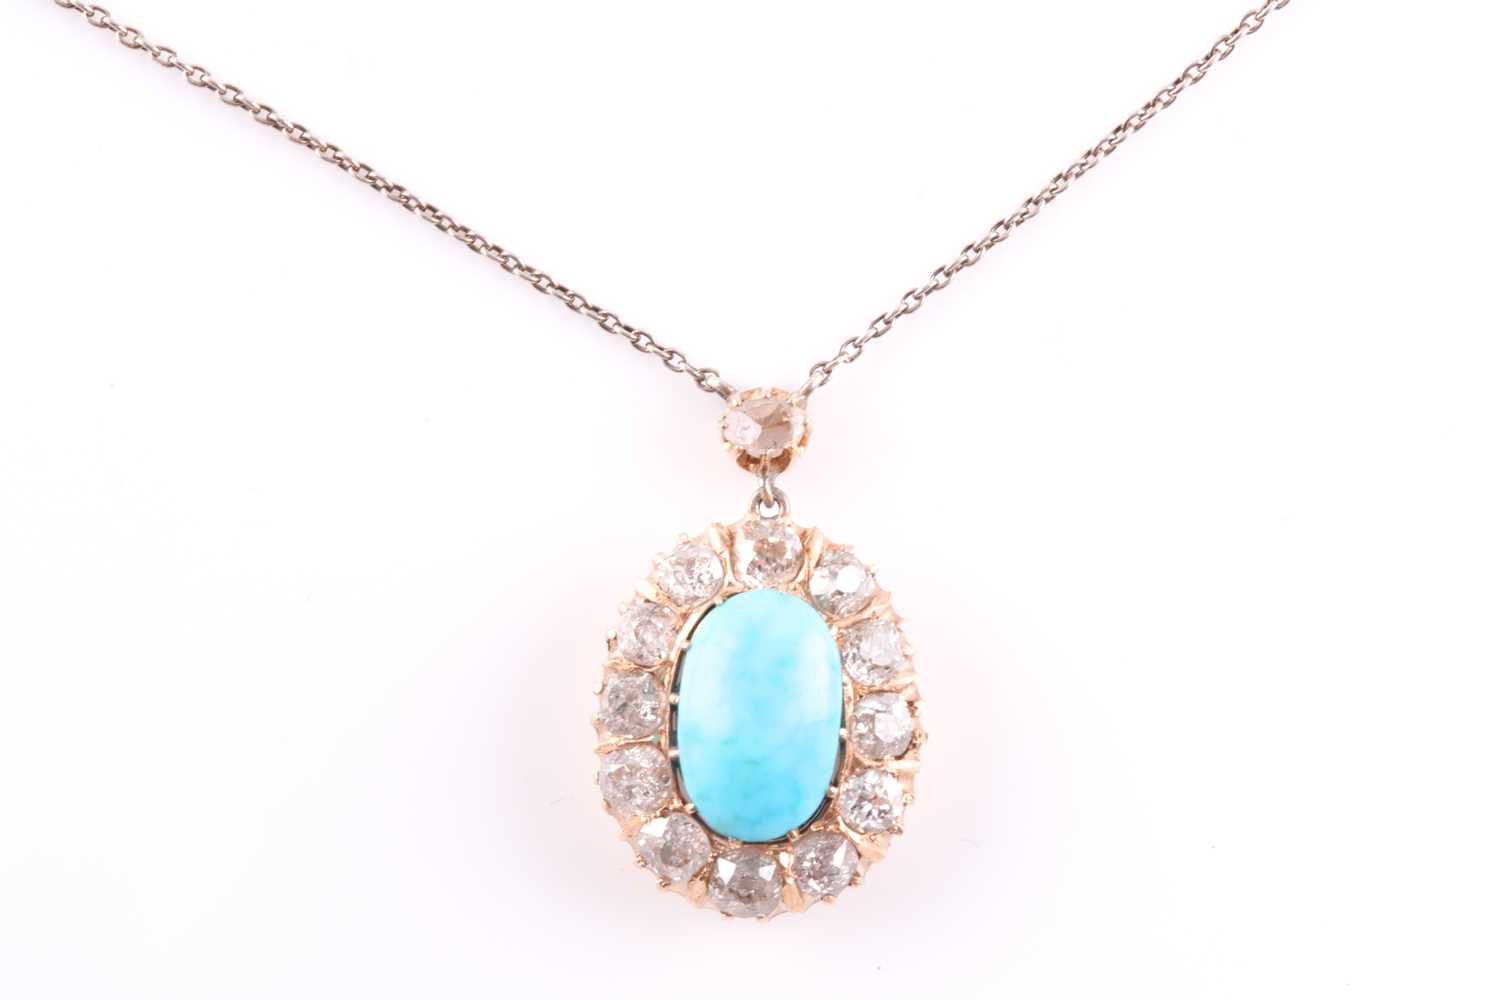 A diamond and turquoise cluster pendant, set with an oval turquoise plaque, surrounded with old-